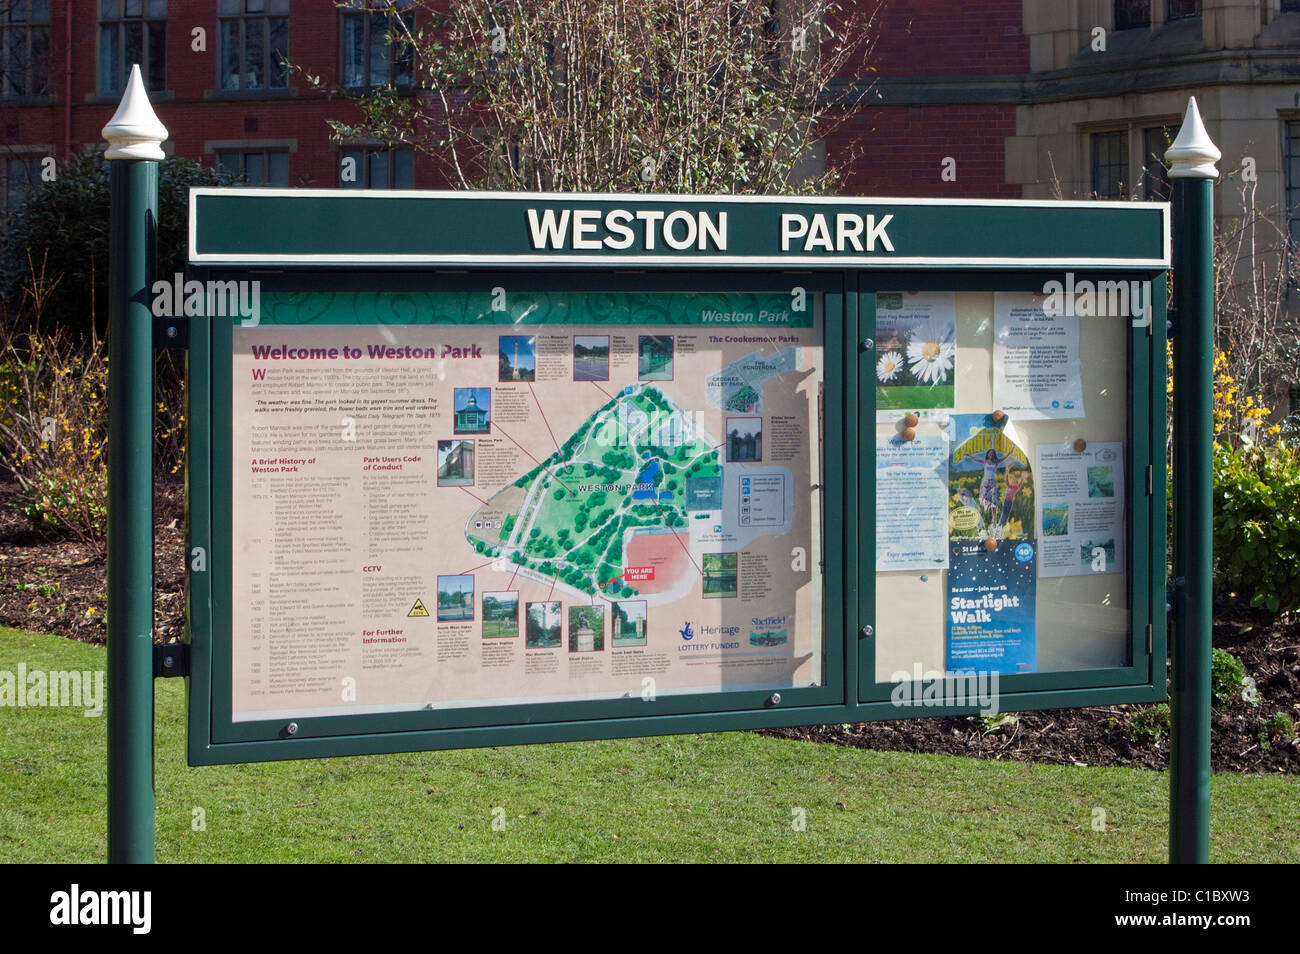 Weston Park Plan and Information Sign, Sheffield - Stock Image